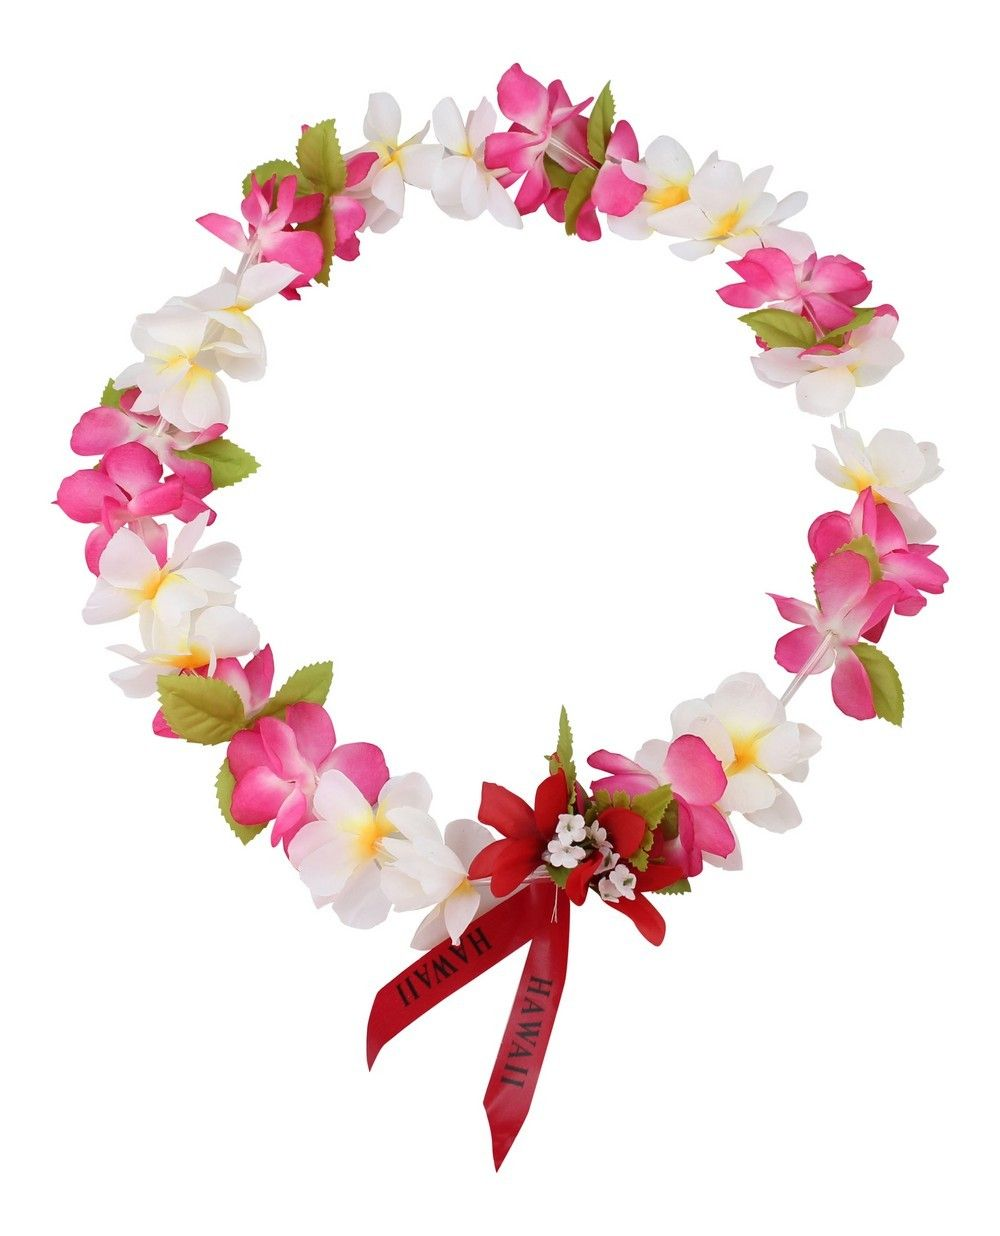 0bcaeb6974f0 Hawaii Luau Party Princess Collection Artificial Silk Fabric Lei White and  Pink